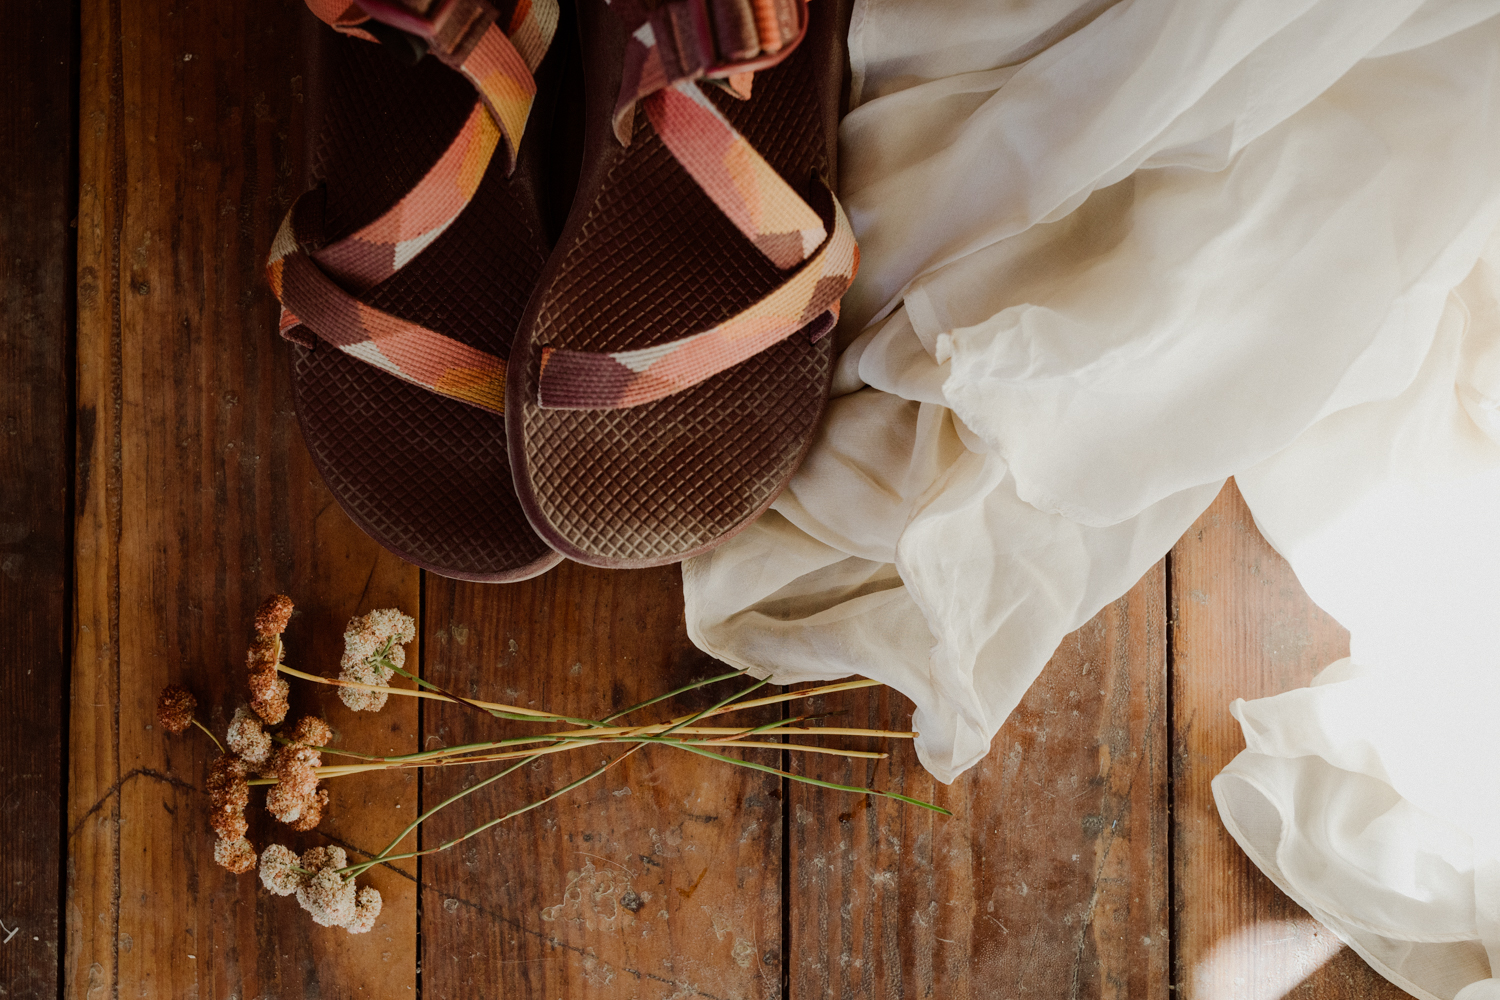 Chacos bridal shoes